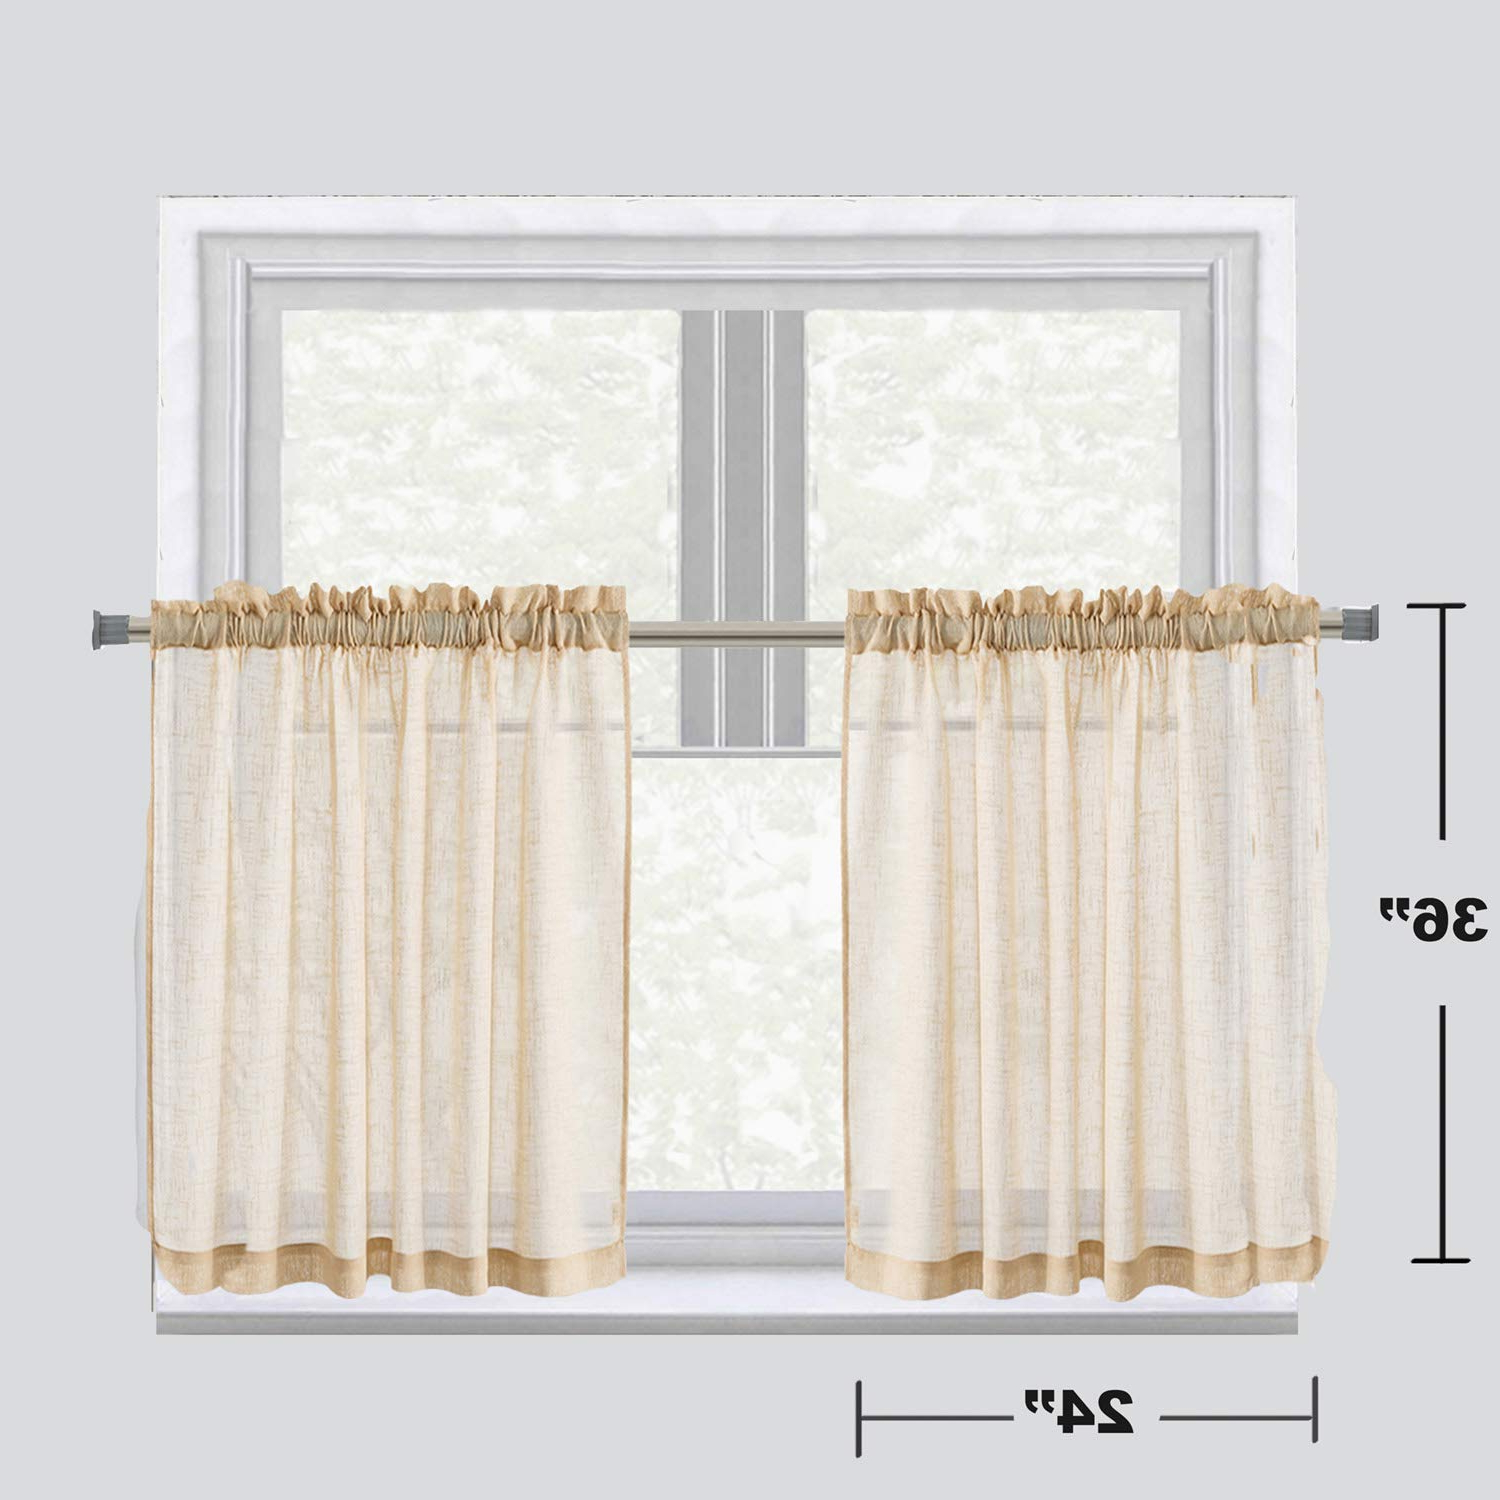 "Coffee Drinks Embroidered Window Valances And Tiers With 2021 Luckyum Taupe Kitchen Tier Curtain Linen Like Privacy Semi Sheer Panels  Half Window Treatment For Bedroom And Kitchen, 2 Pair, 24"" 36"",rod Pocket (View 9 of 20)"